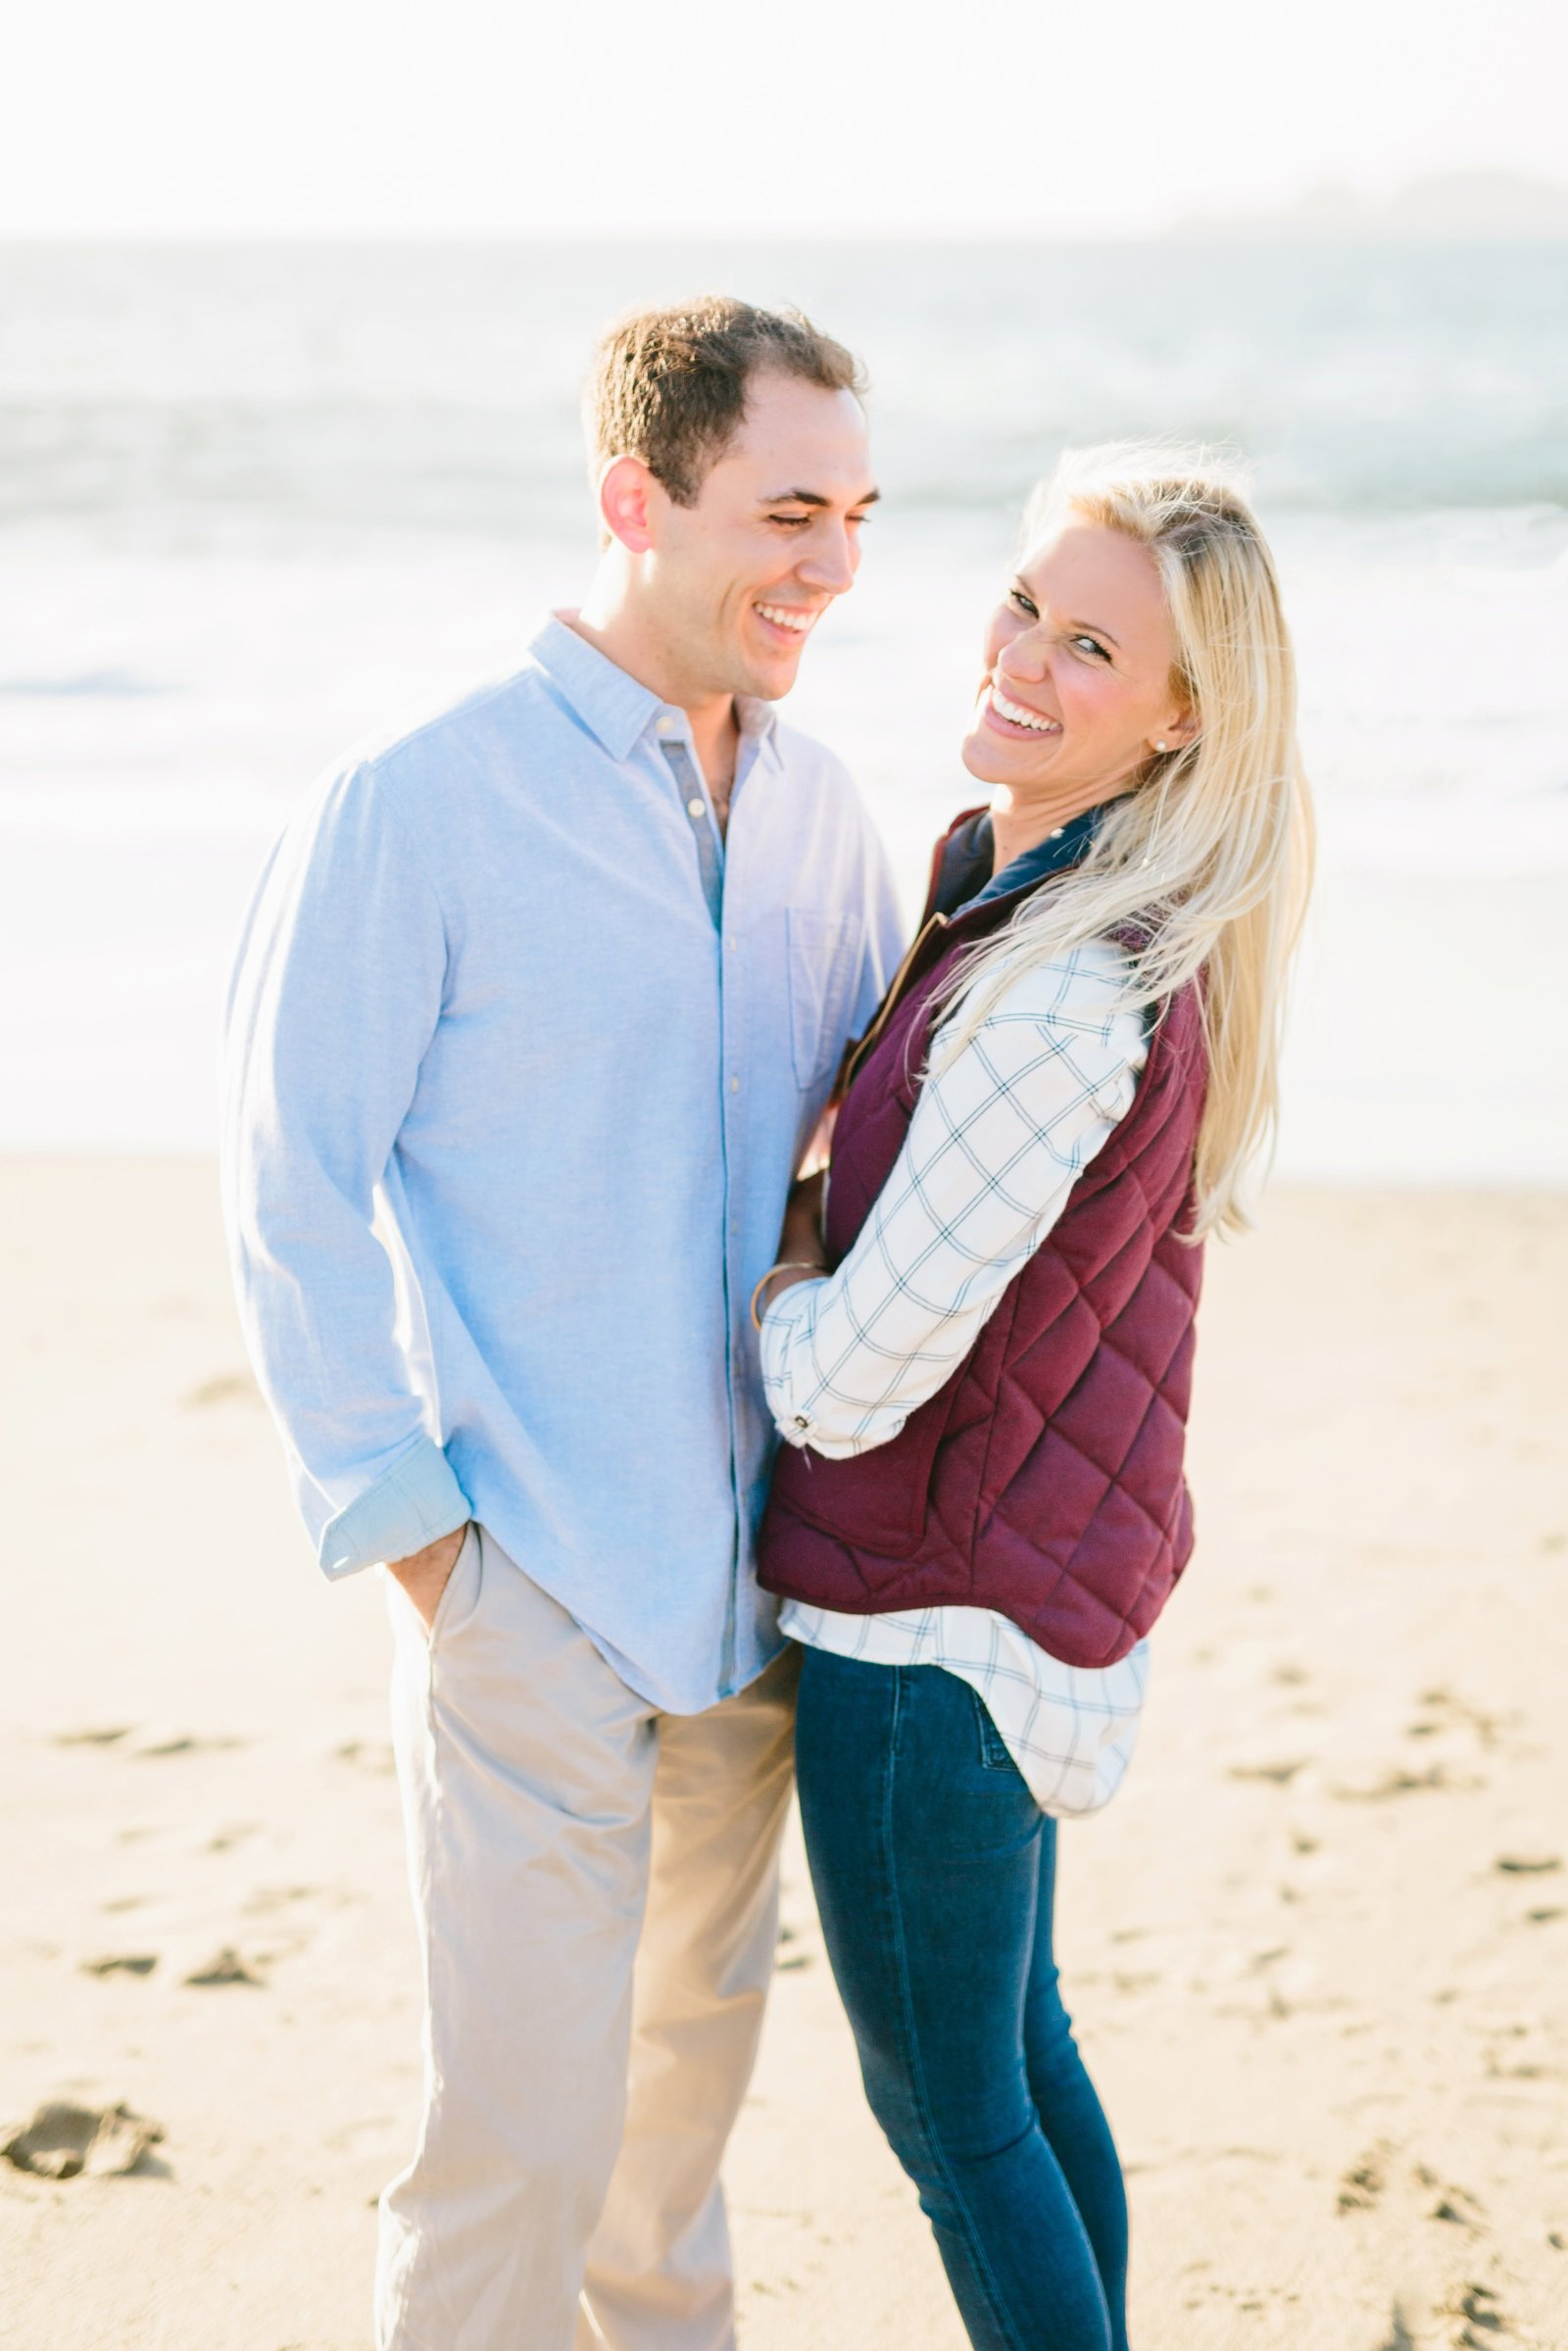 Engagement Photos-Jodee Debes Photography-060